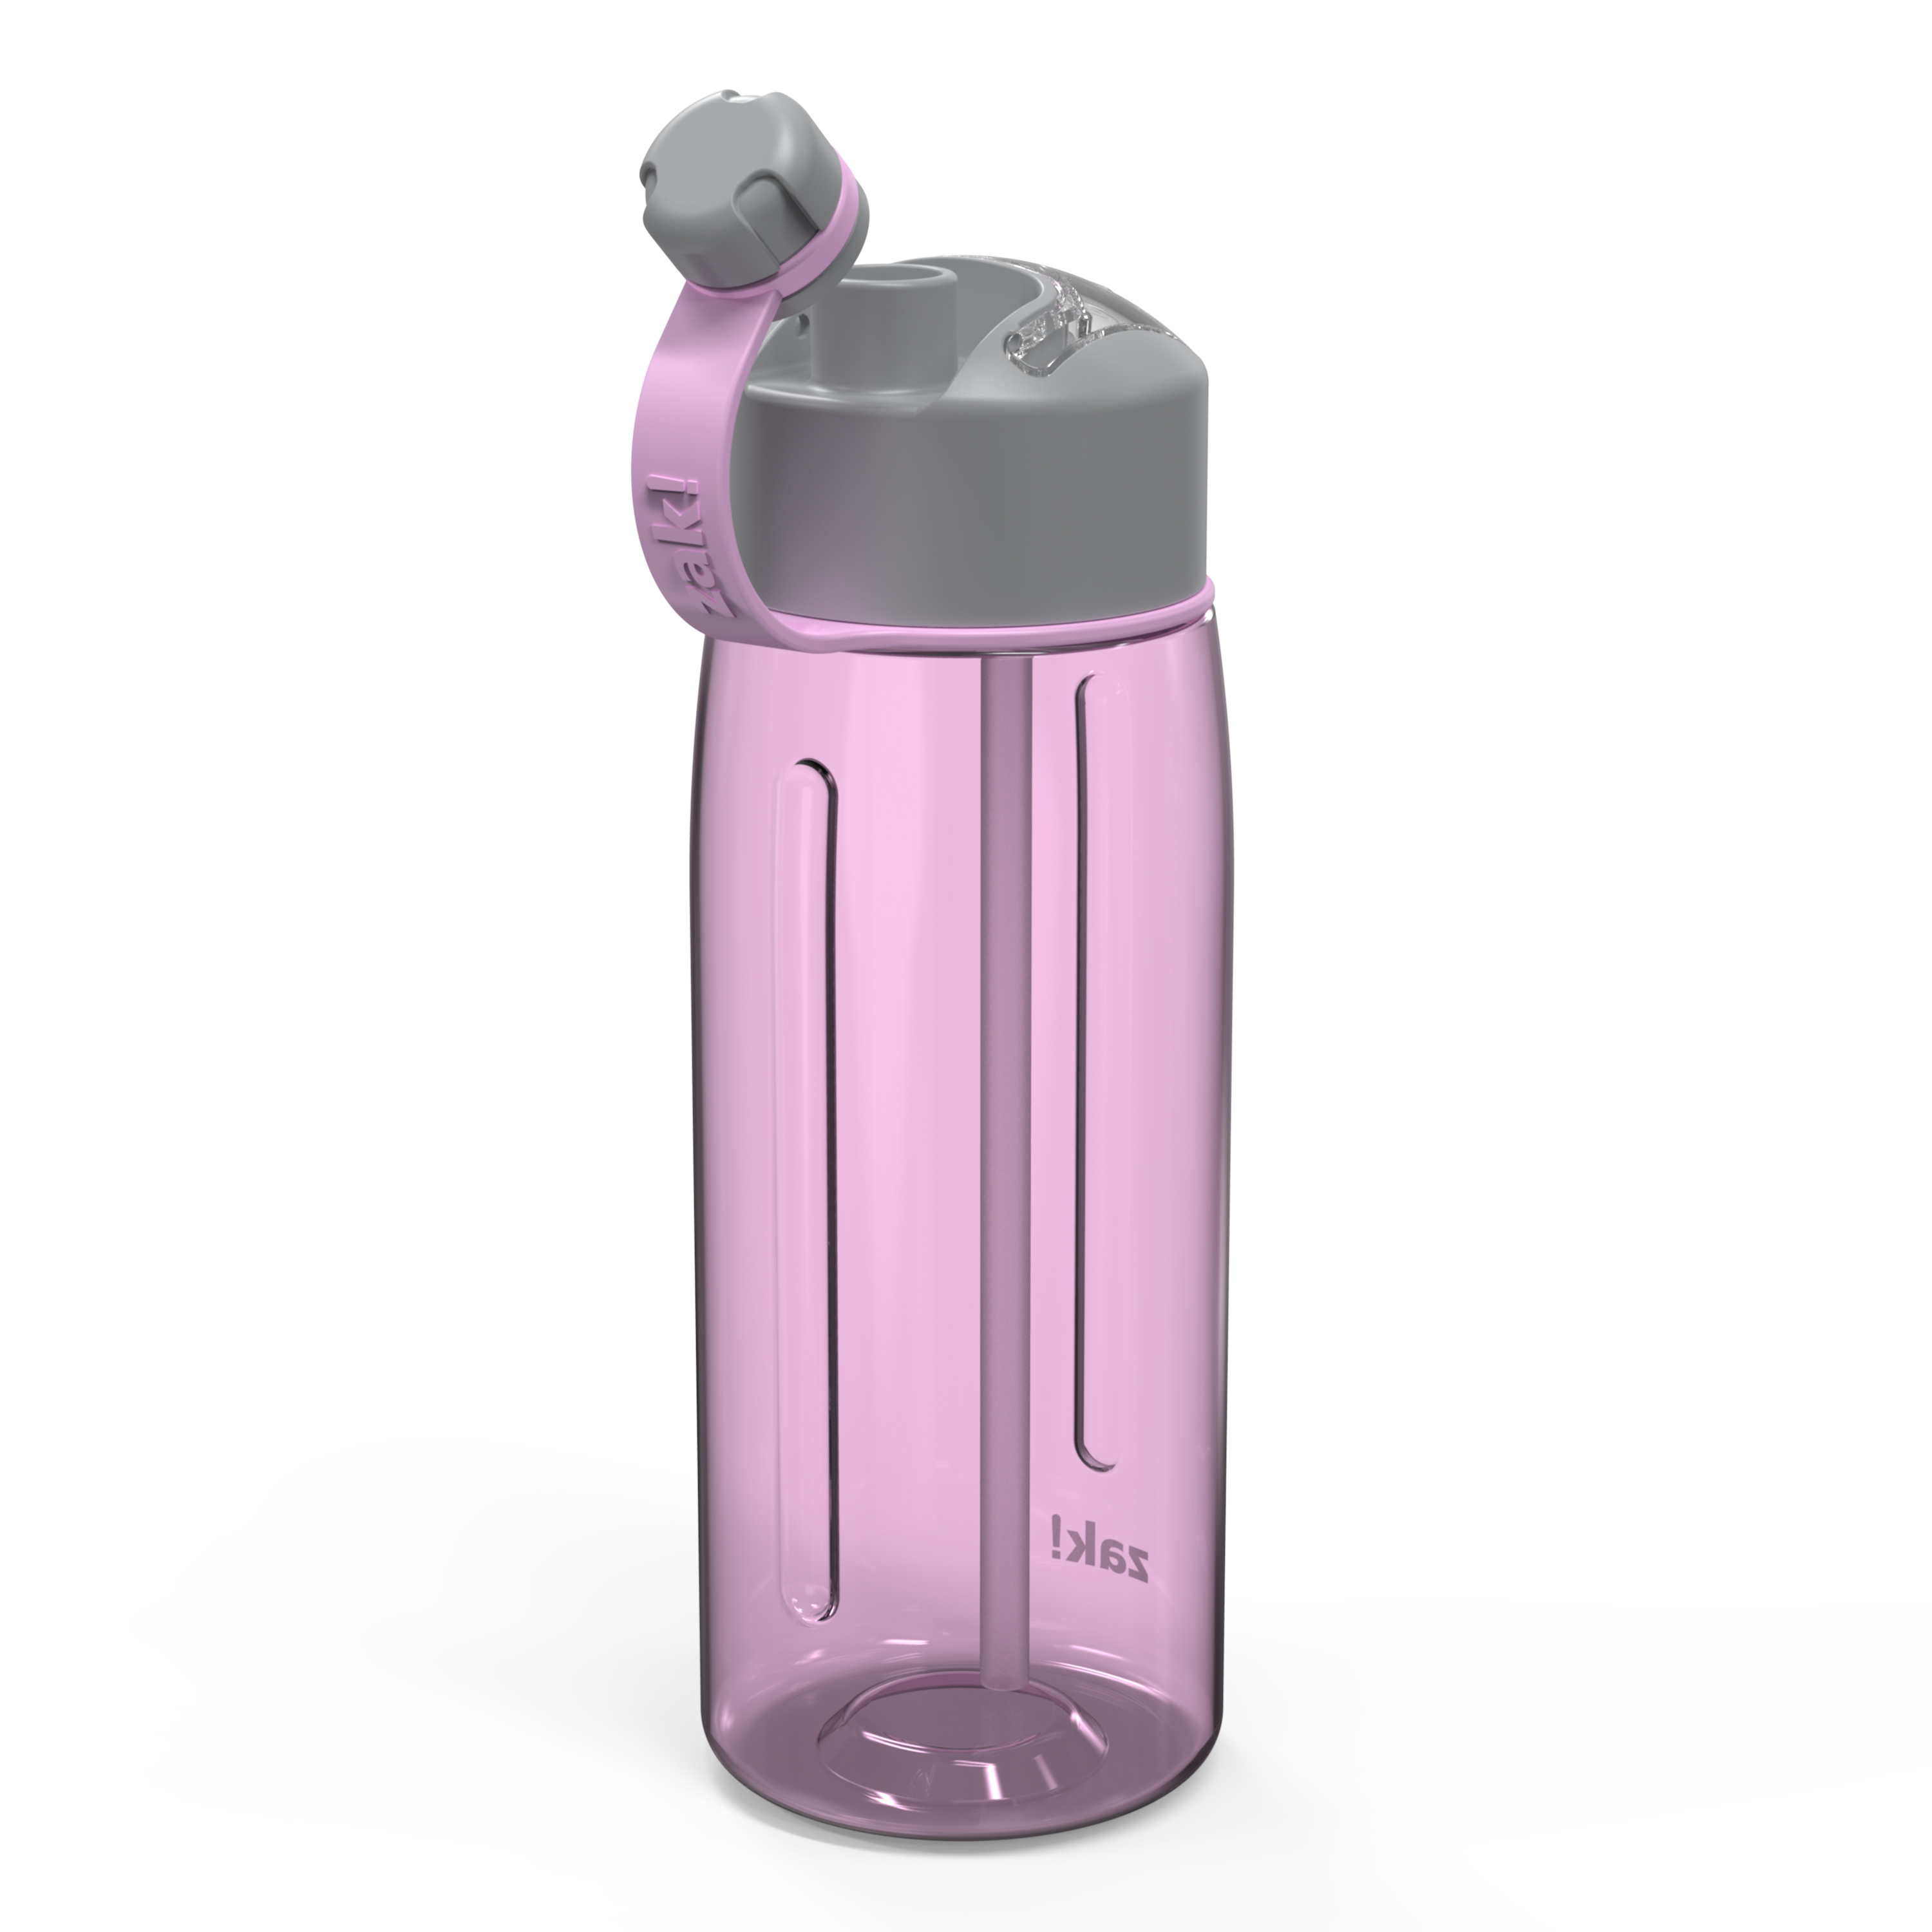 Genesis 32 ounce Water Bottle, Lilac slideshow image 6